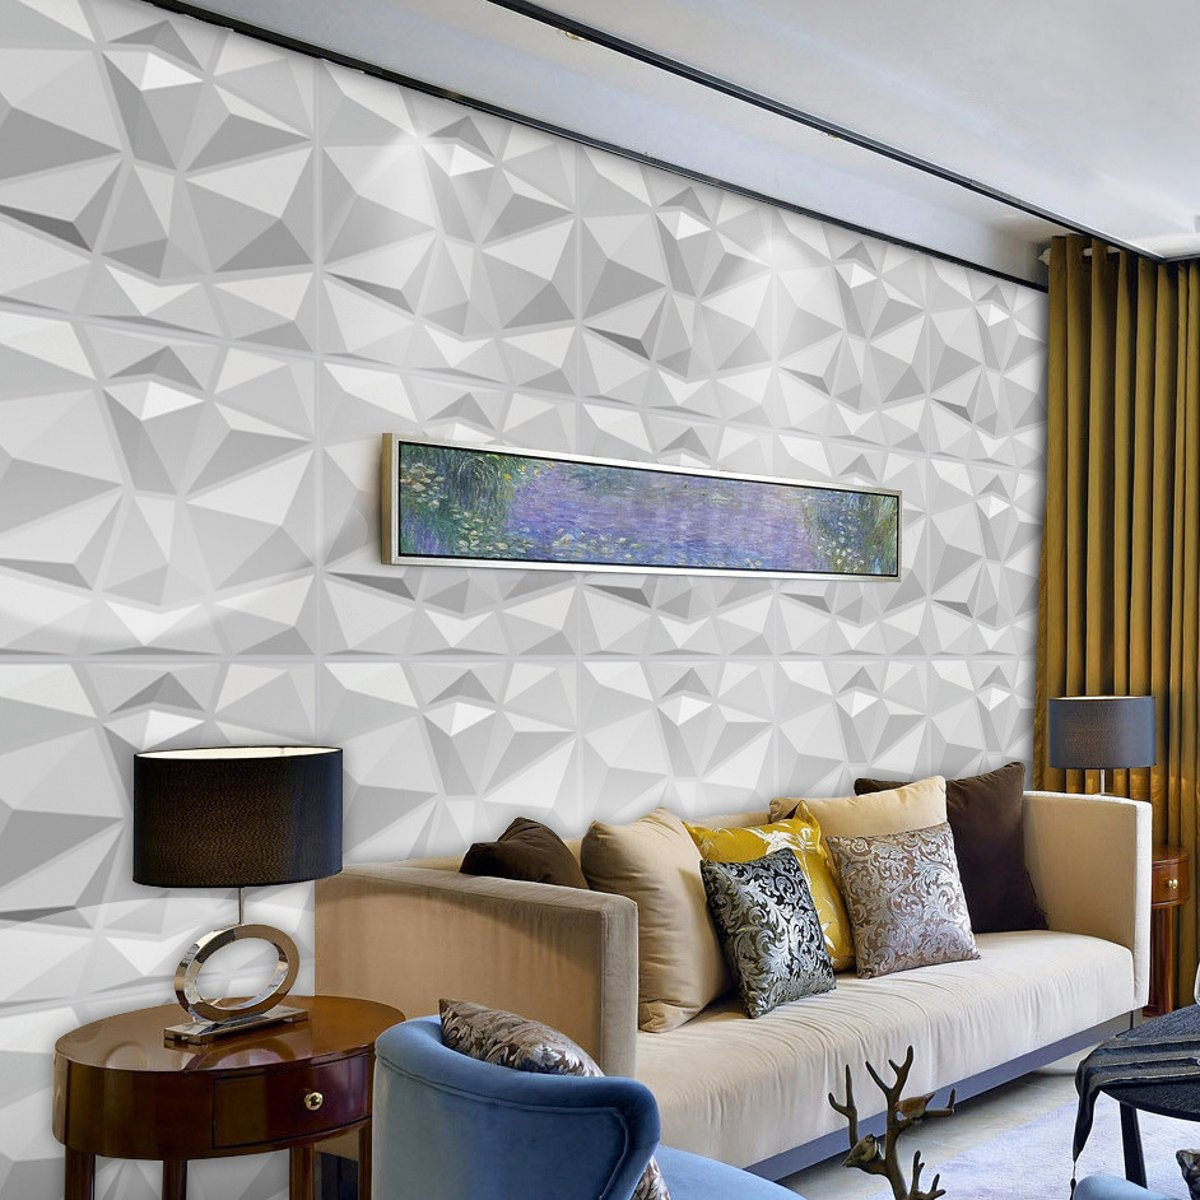 12 Pcs Decorative 3D Wall Panels in Diamond Design Matt White 30x30cm Wallpaper Mural Tile-Panel-Mold